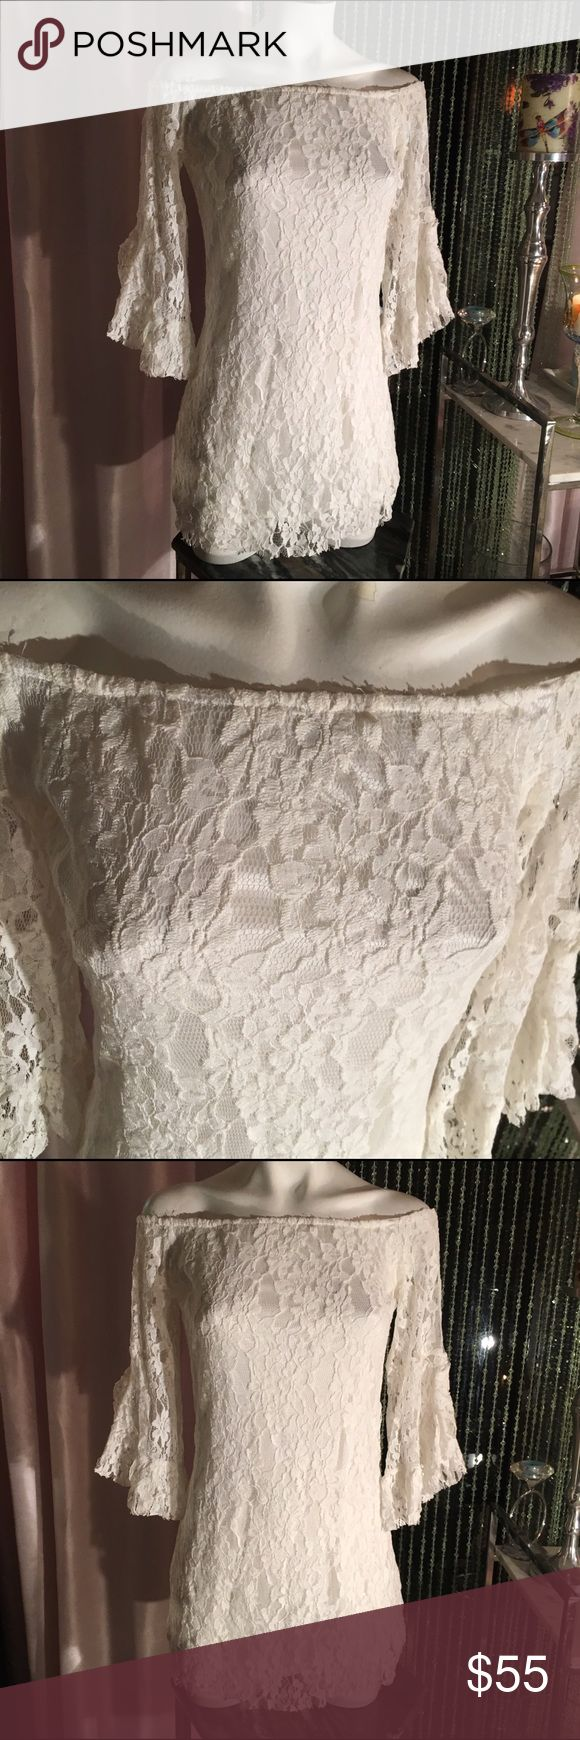 🥀Sizzling sexy white dress🥀 🥀This dress is so pretty and comfortable, white off the shoulder with Bell sheer sleeves. The bodice is all lined. I am always cold so I love the longer sleeves for clubs. Super sexy. Excellent condition Dresses Mini